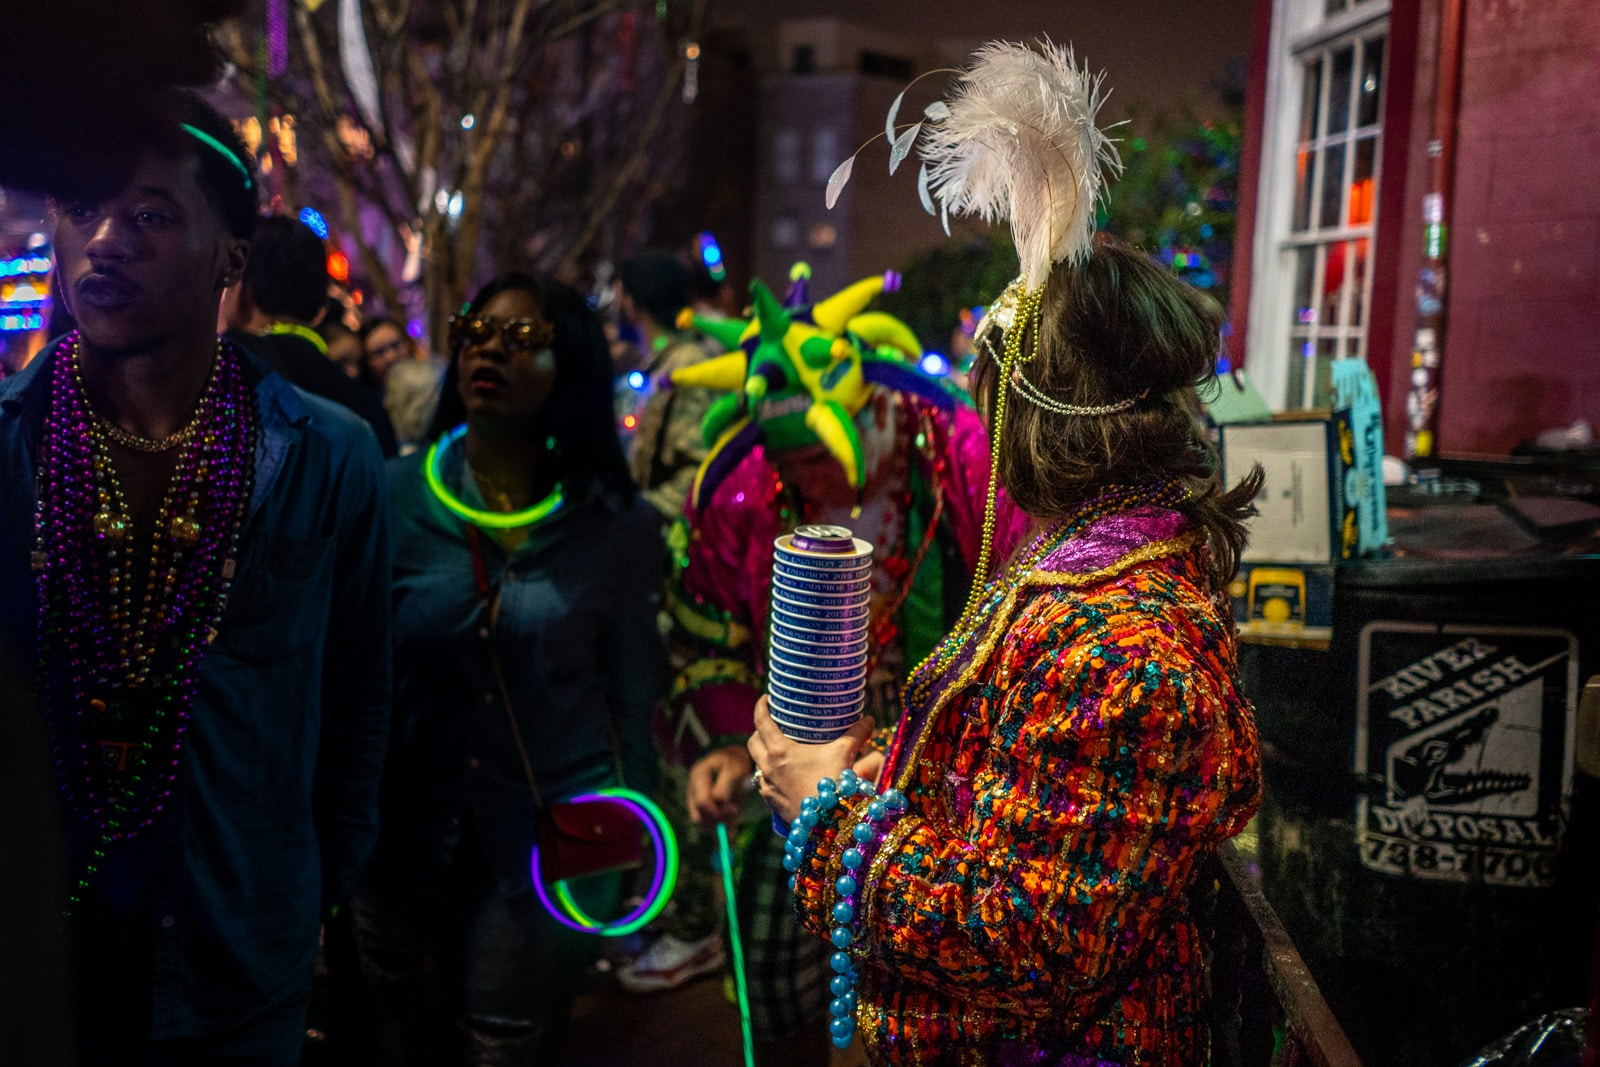 Woman in a jacket during Mardi Gras